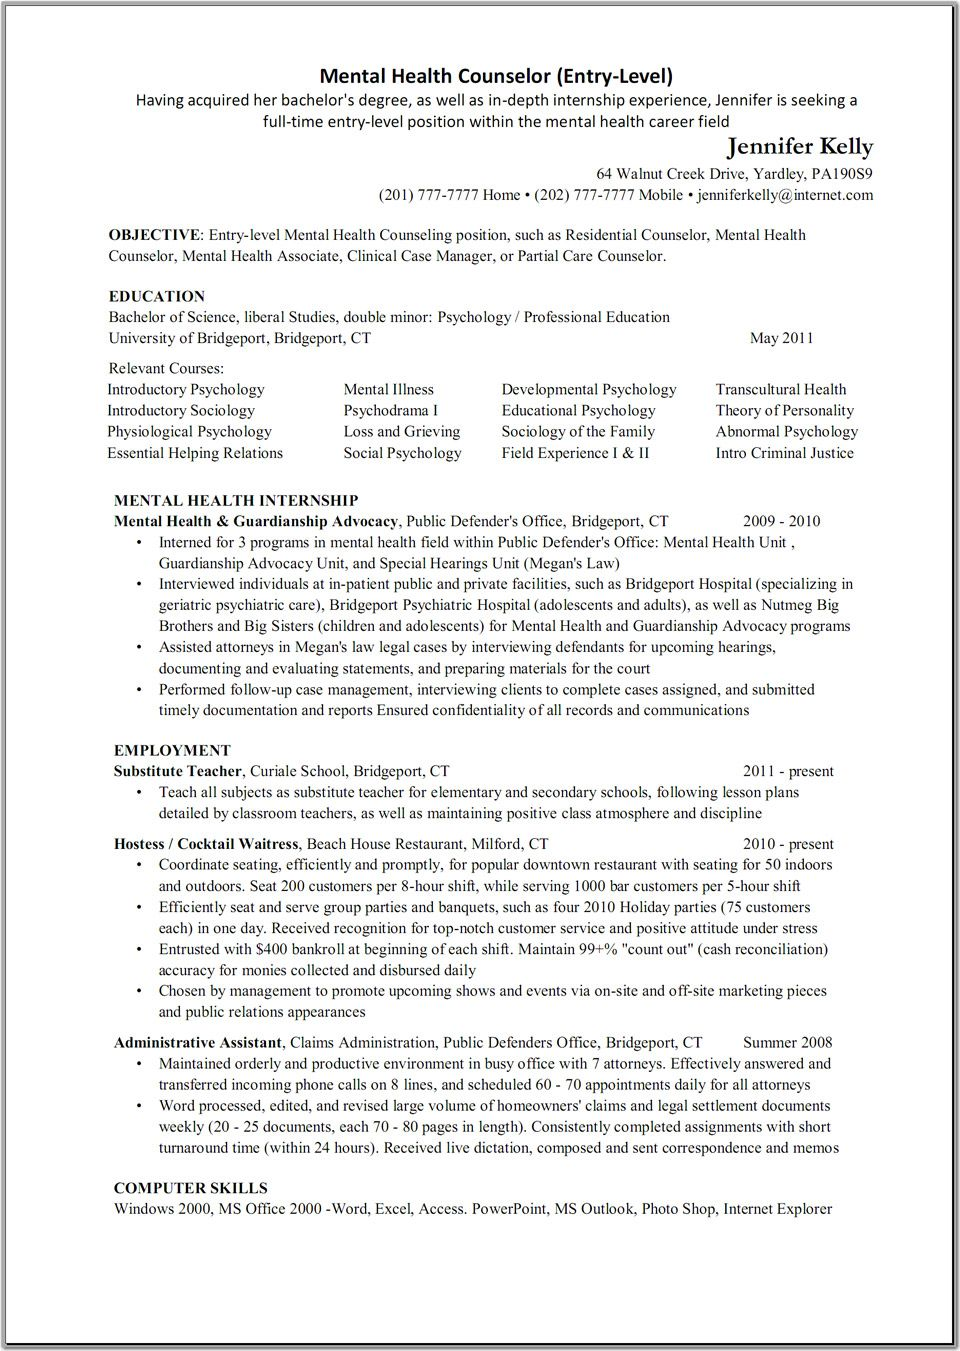 mental health counselor resume objective